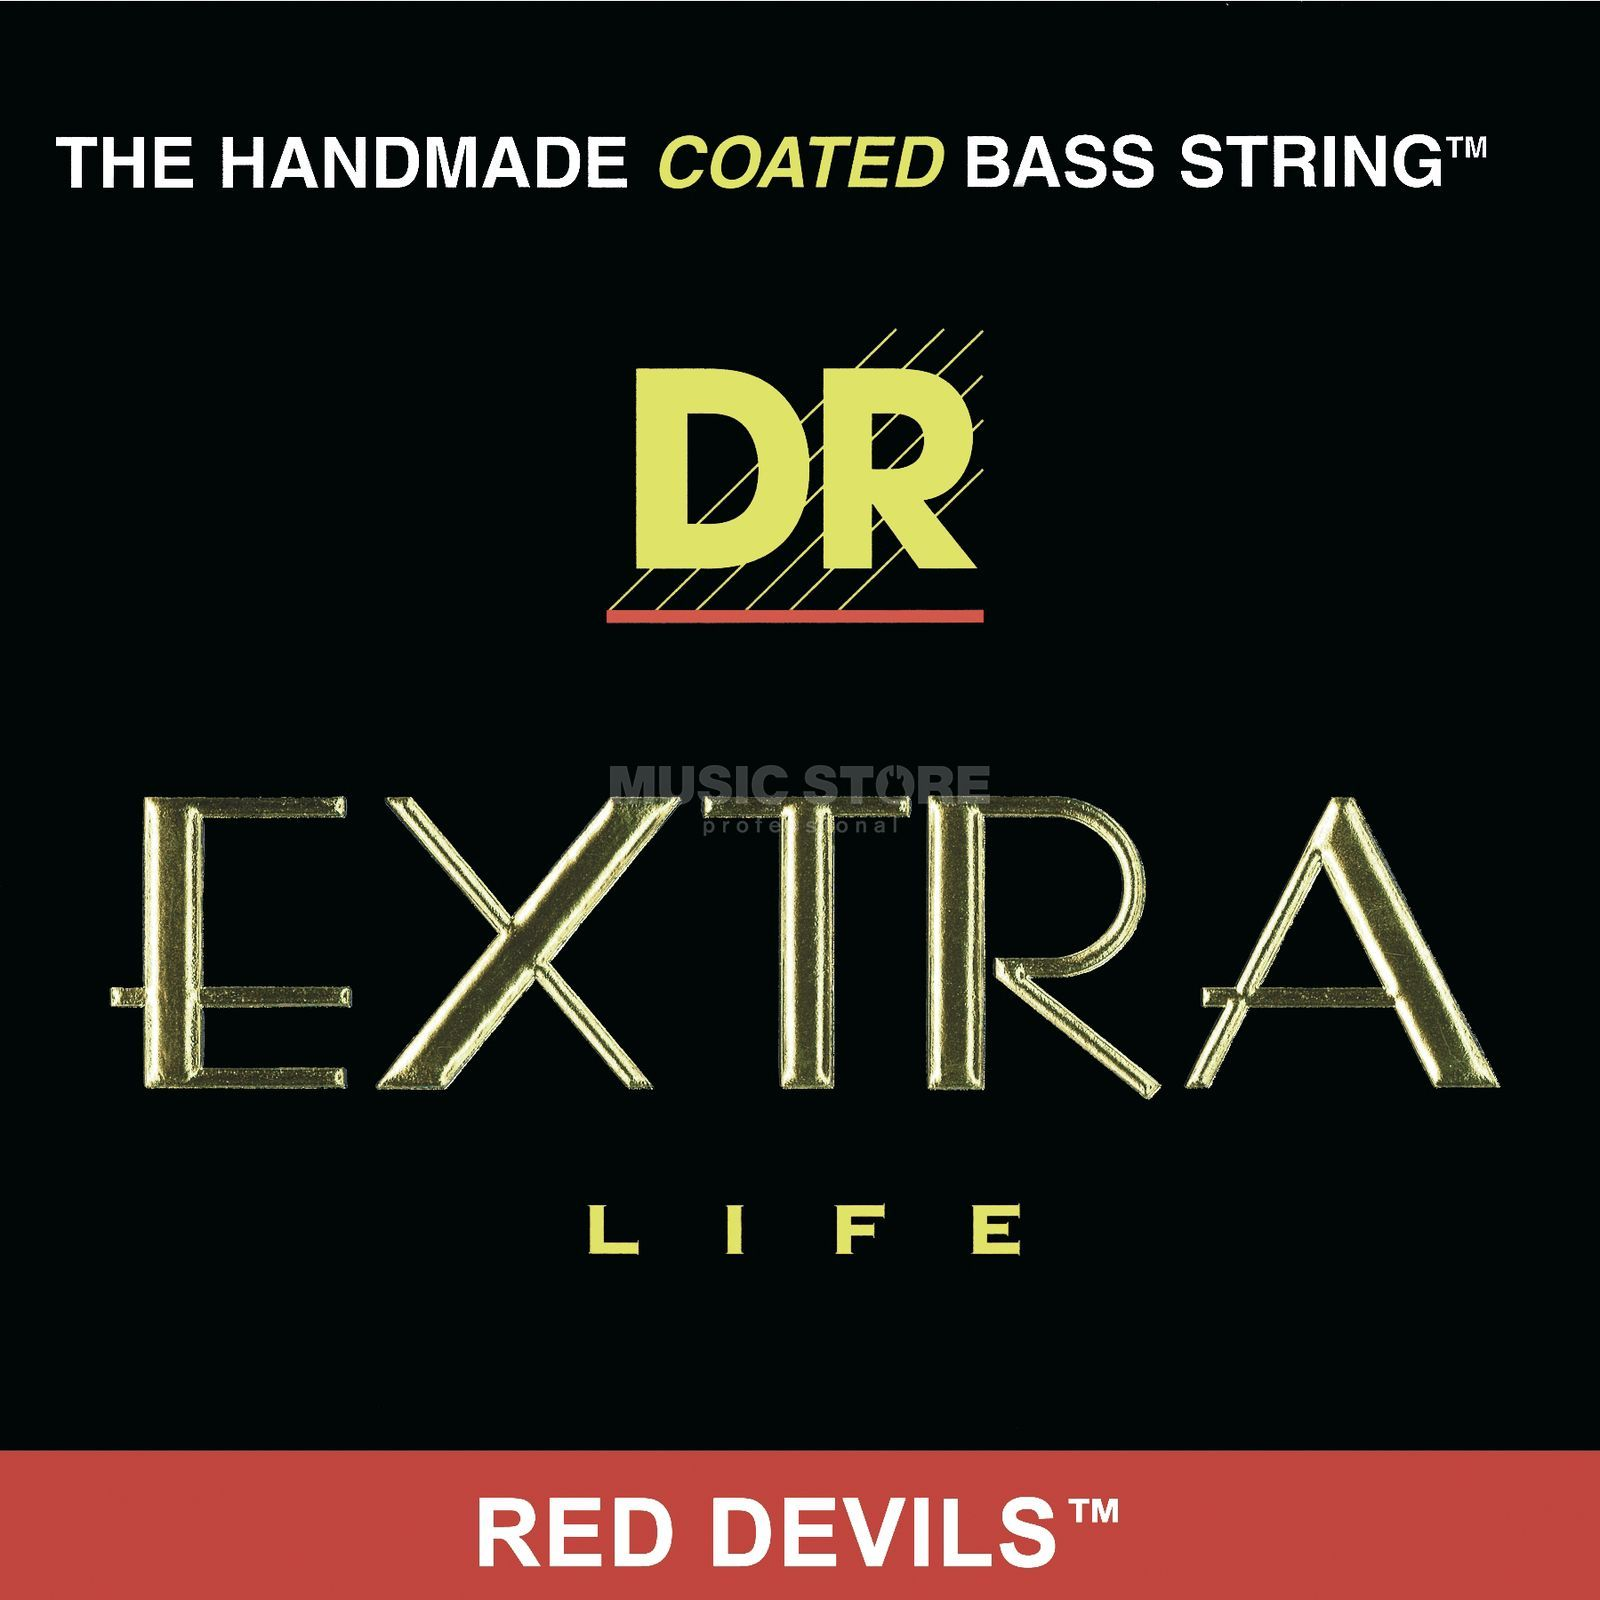 DR 4 Set Bass 45-105 Extra-Life Red Devils RDB-45 Product Image